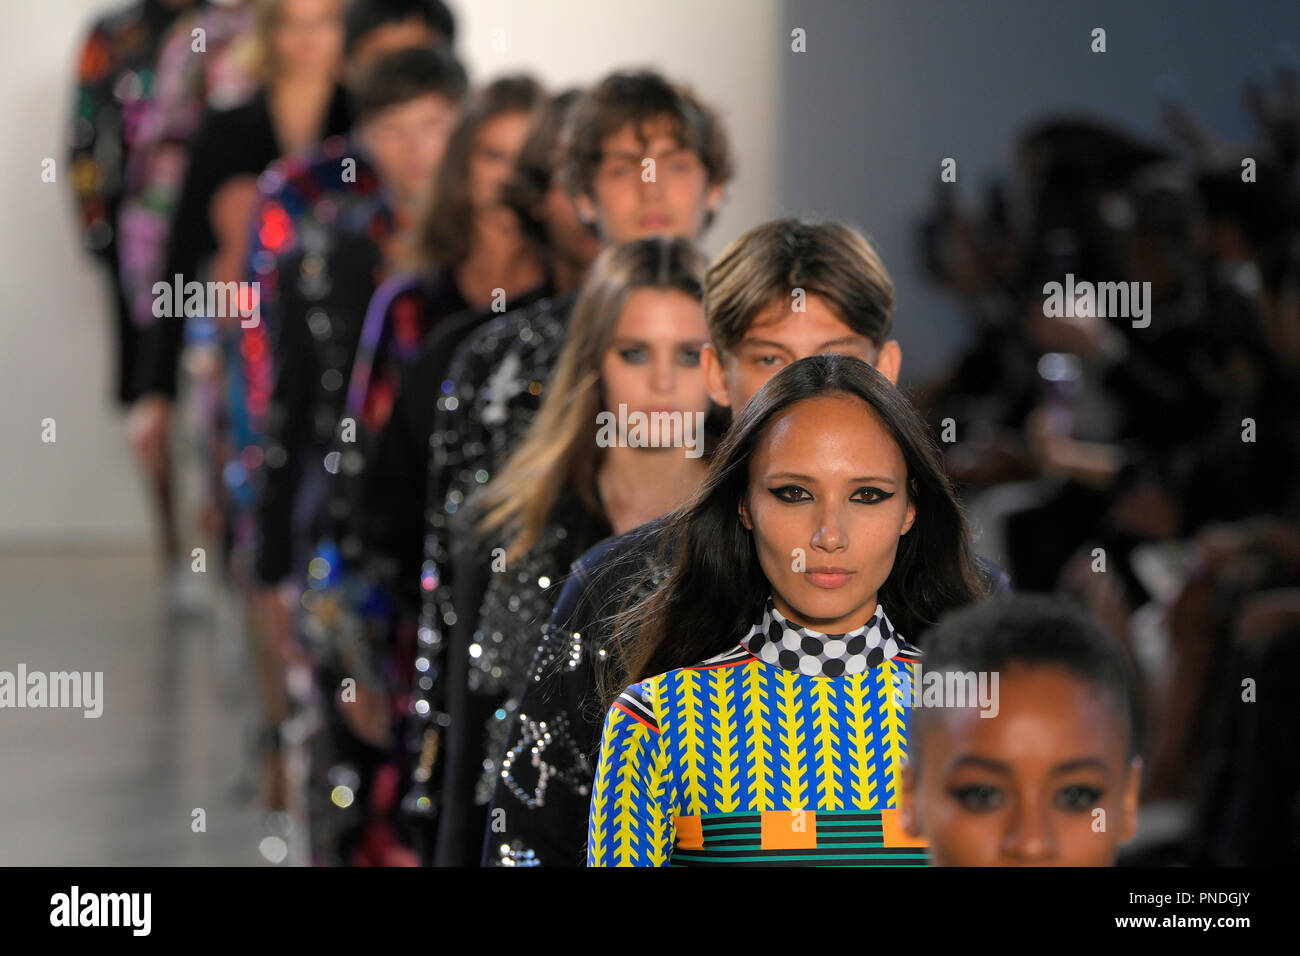 NEW YORK, NY - SEPTEMBER 10: Models walk the runway for Libertine during New York Fashion Week: The Shows at Gallery II at Spring Studios on September - Stock Image